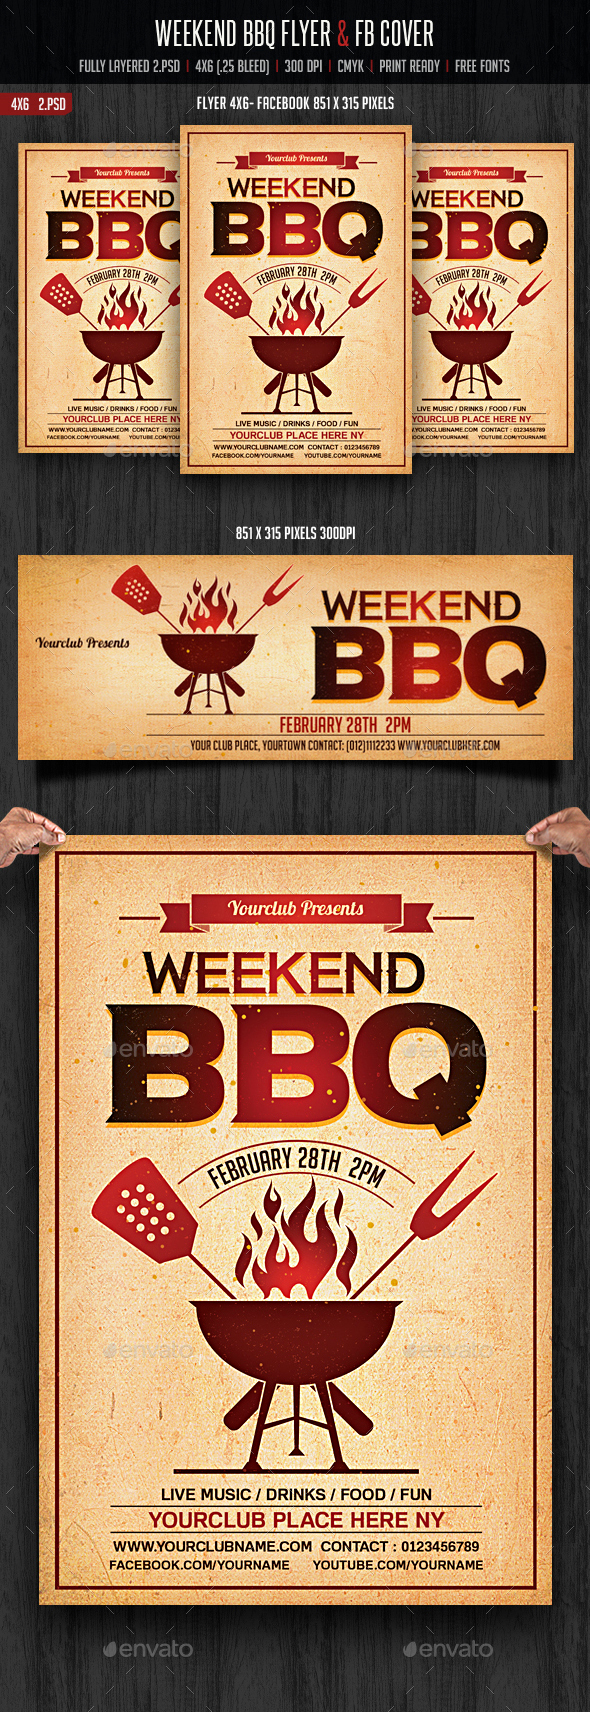 Weekend BBQ Flyer & FB Cover - Clubs & Parties Events